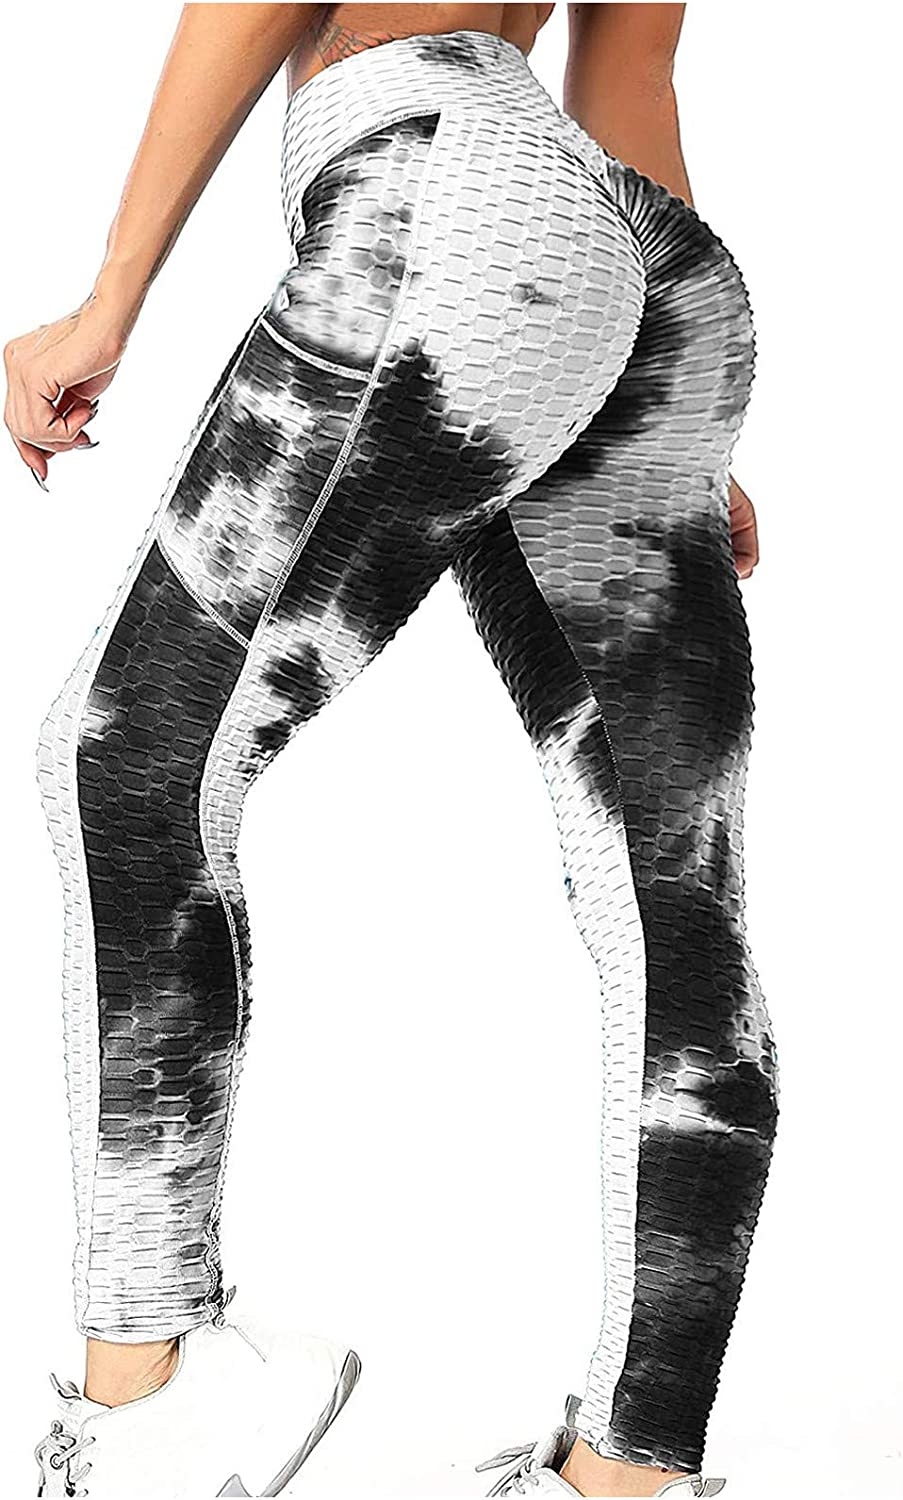 Max 69% OFF Famous TikTok Leggings for Women Waist Ruched Butt Weekly update High Lifting